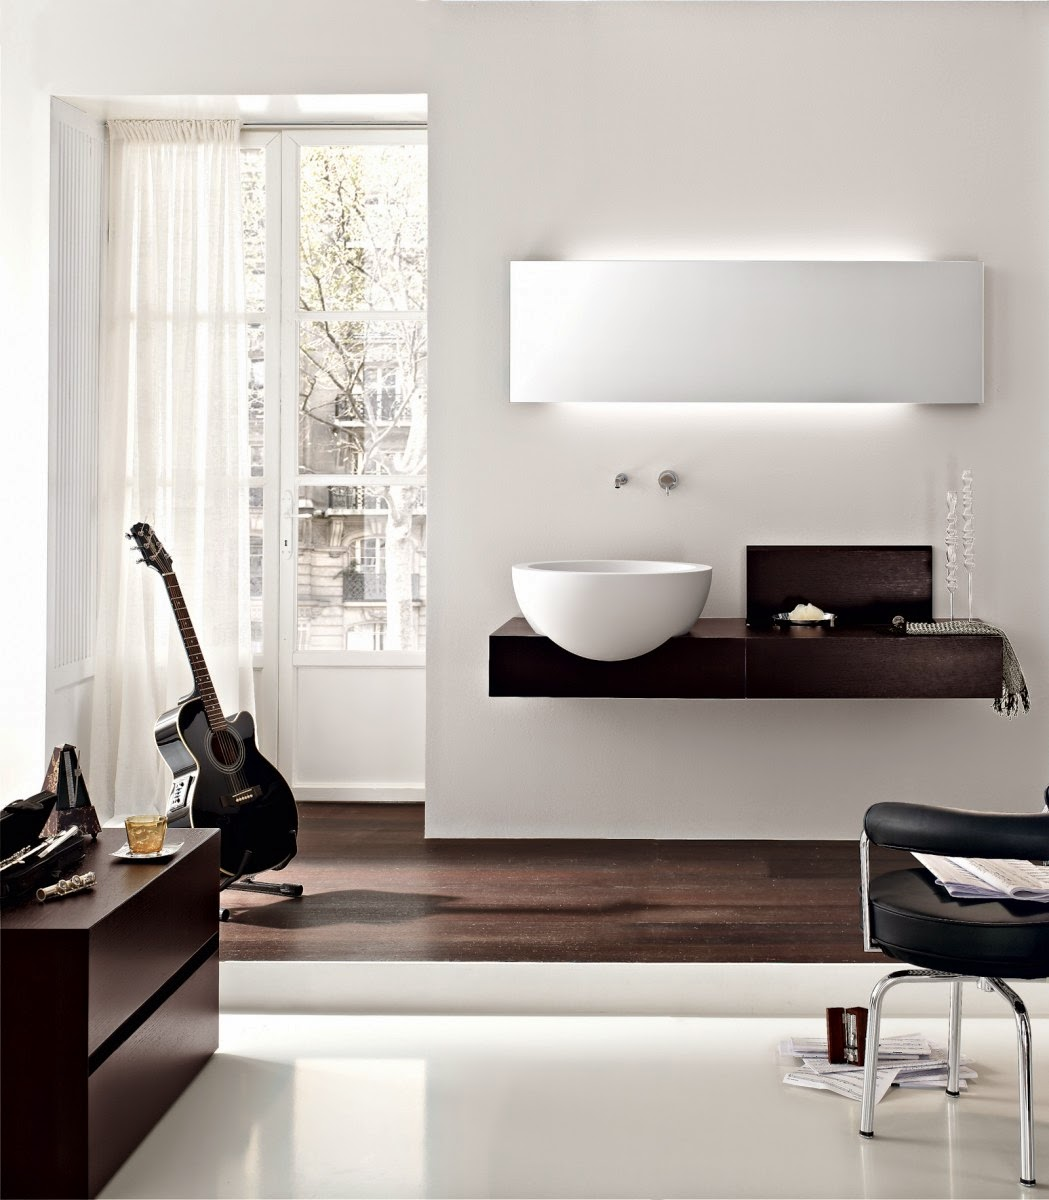 Minimalism Interior Design: Interior With Minimalism Shows The Best Rational